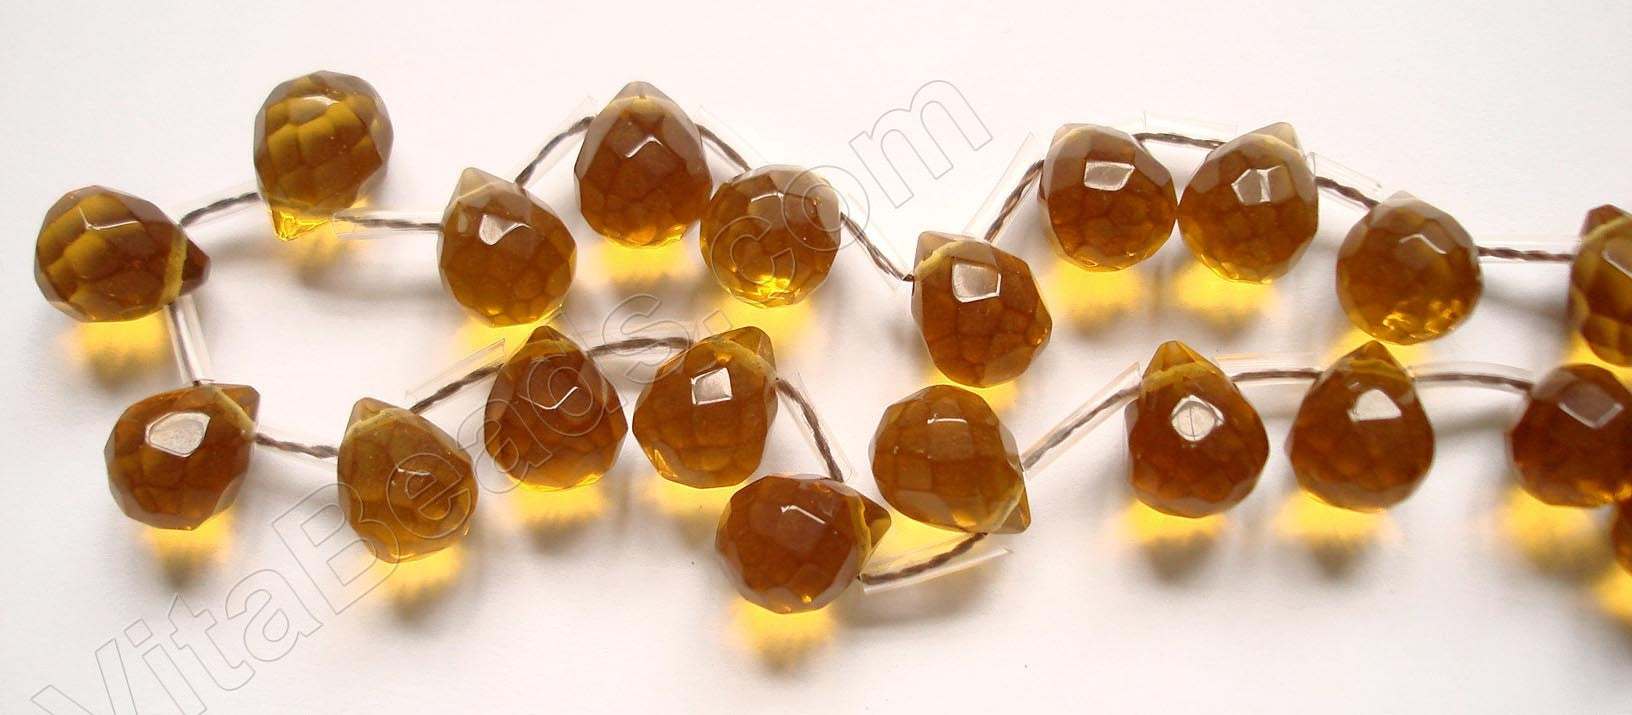 Amber Crystal Quartz - 9x11mm Faceted Teardrops 16""